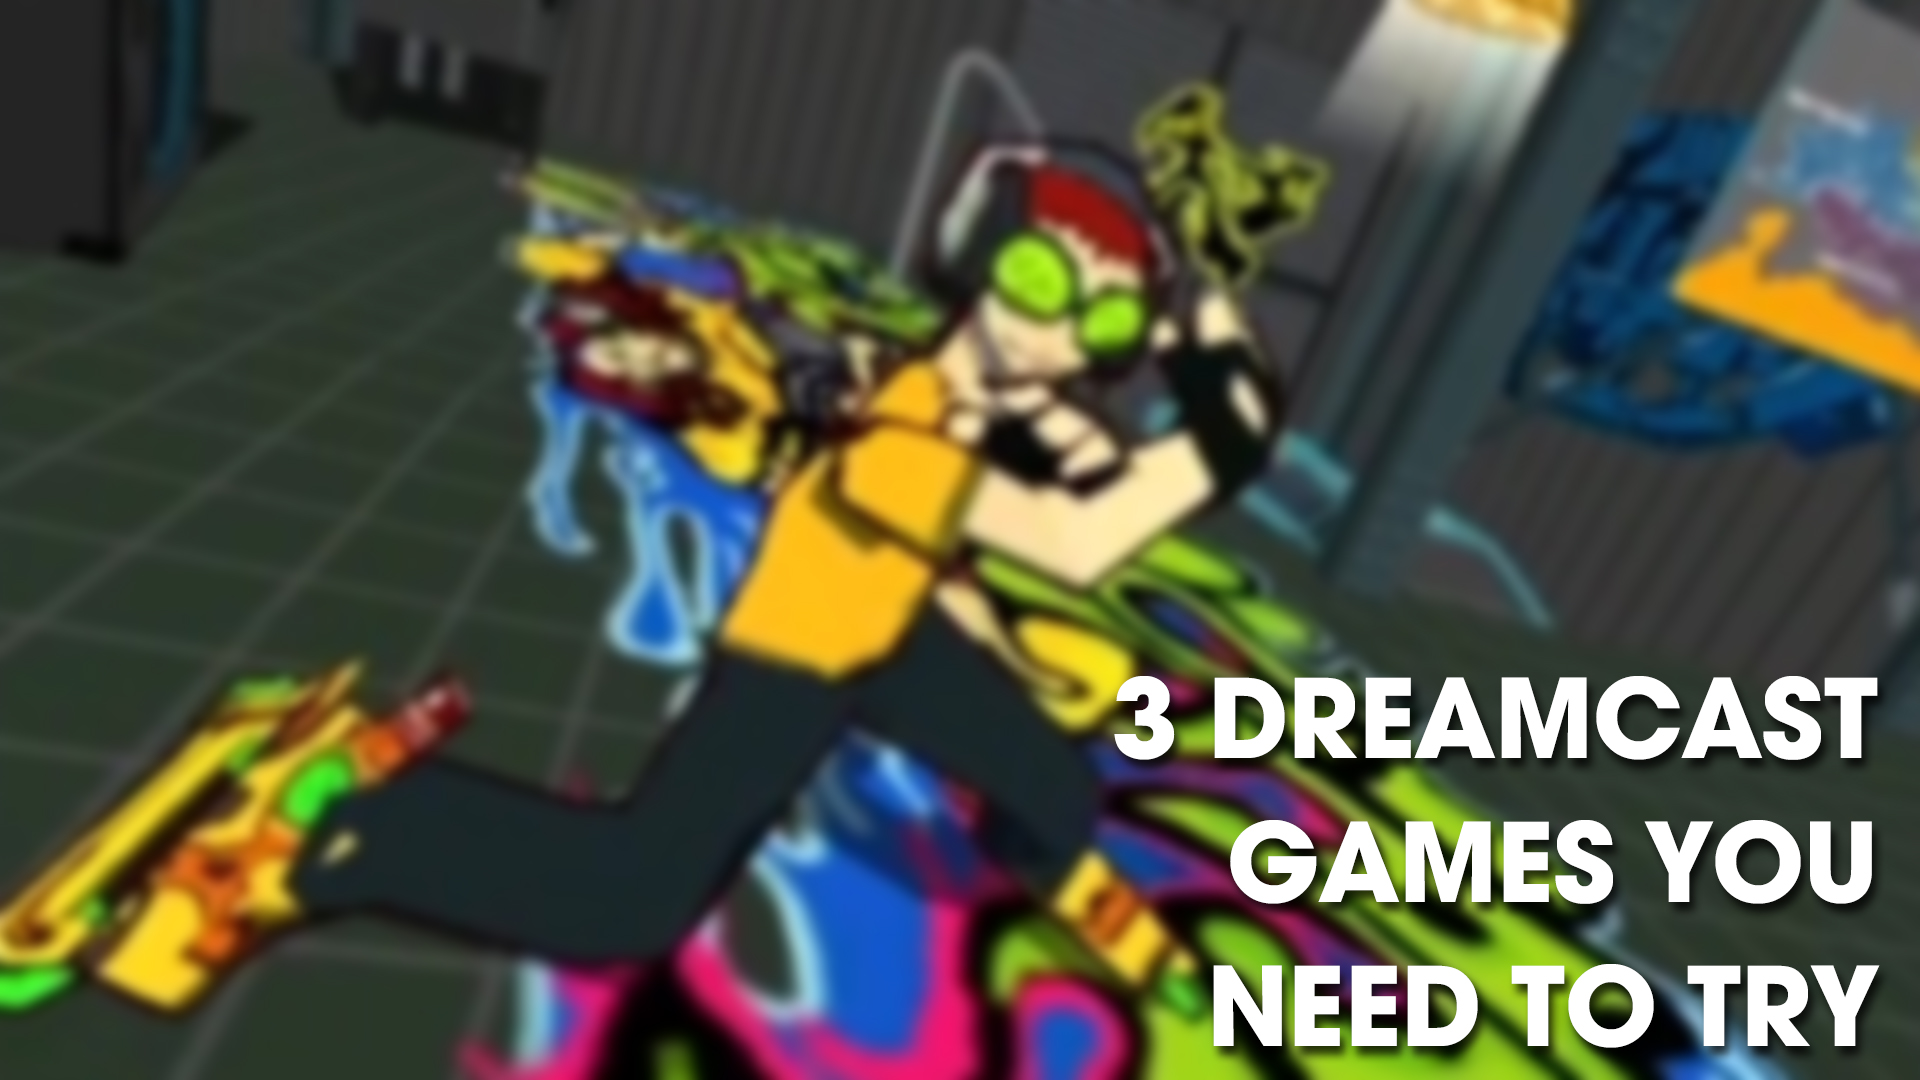 Scott Tumilty: 3 Dreamcast Games You NEED To Try